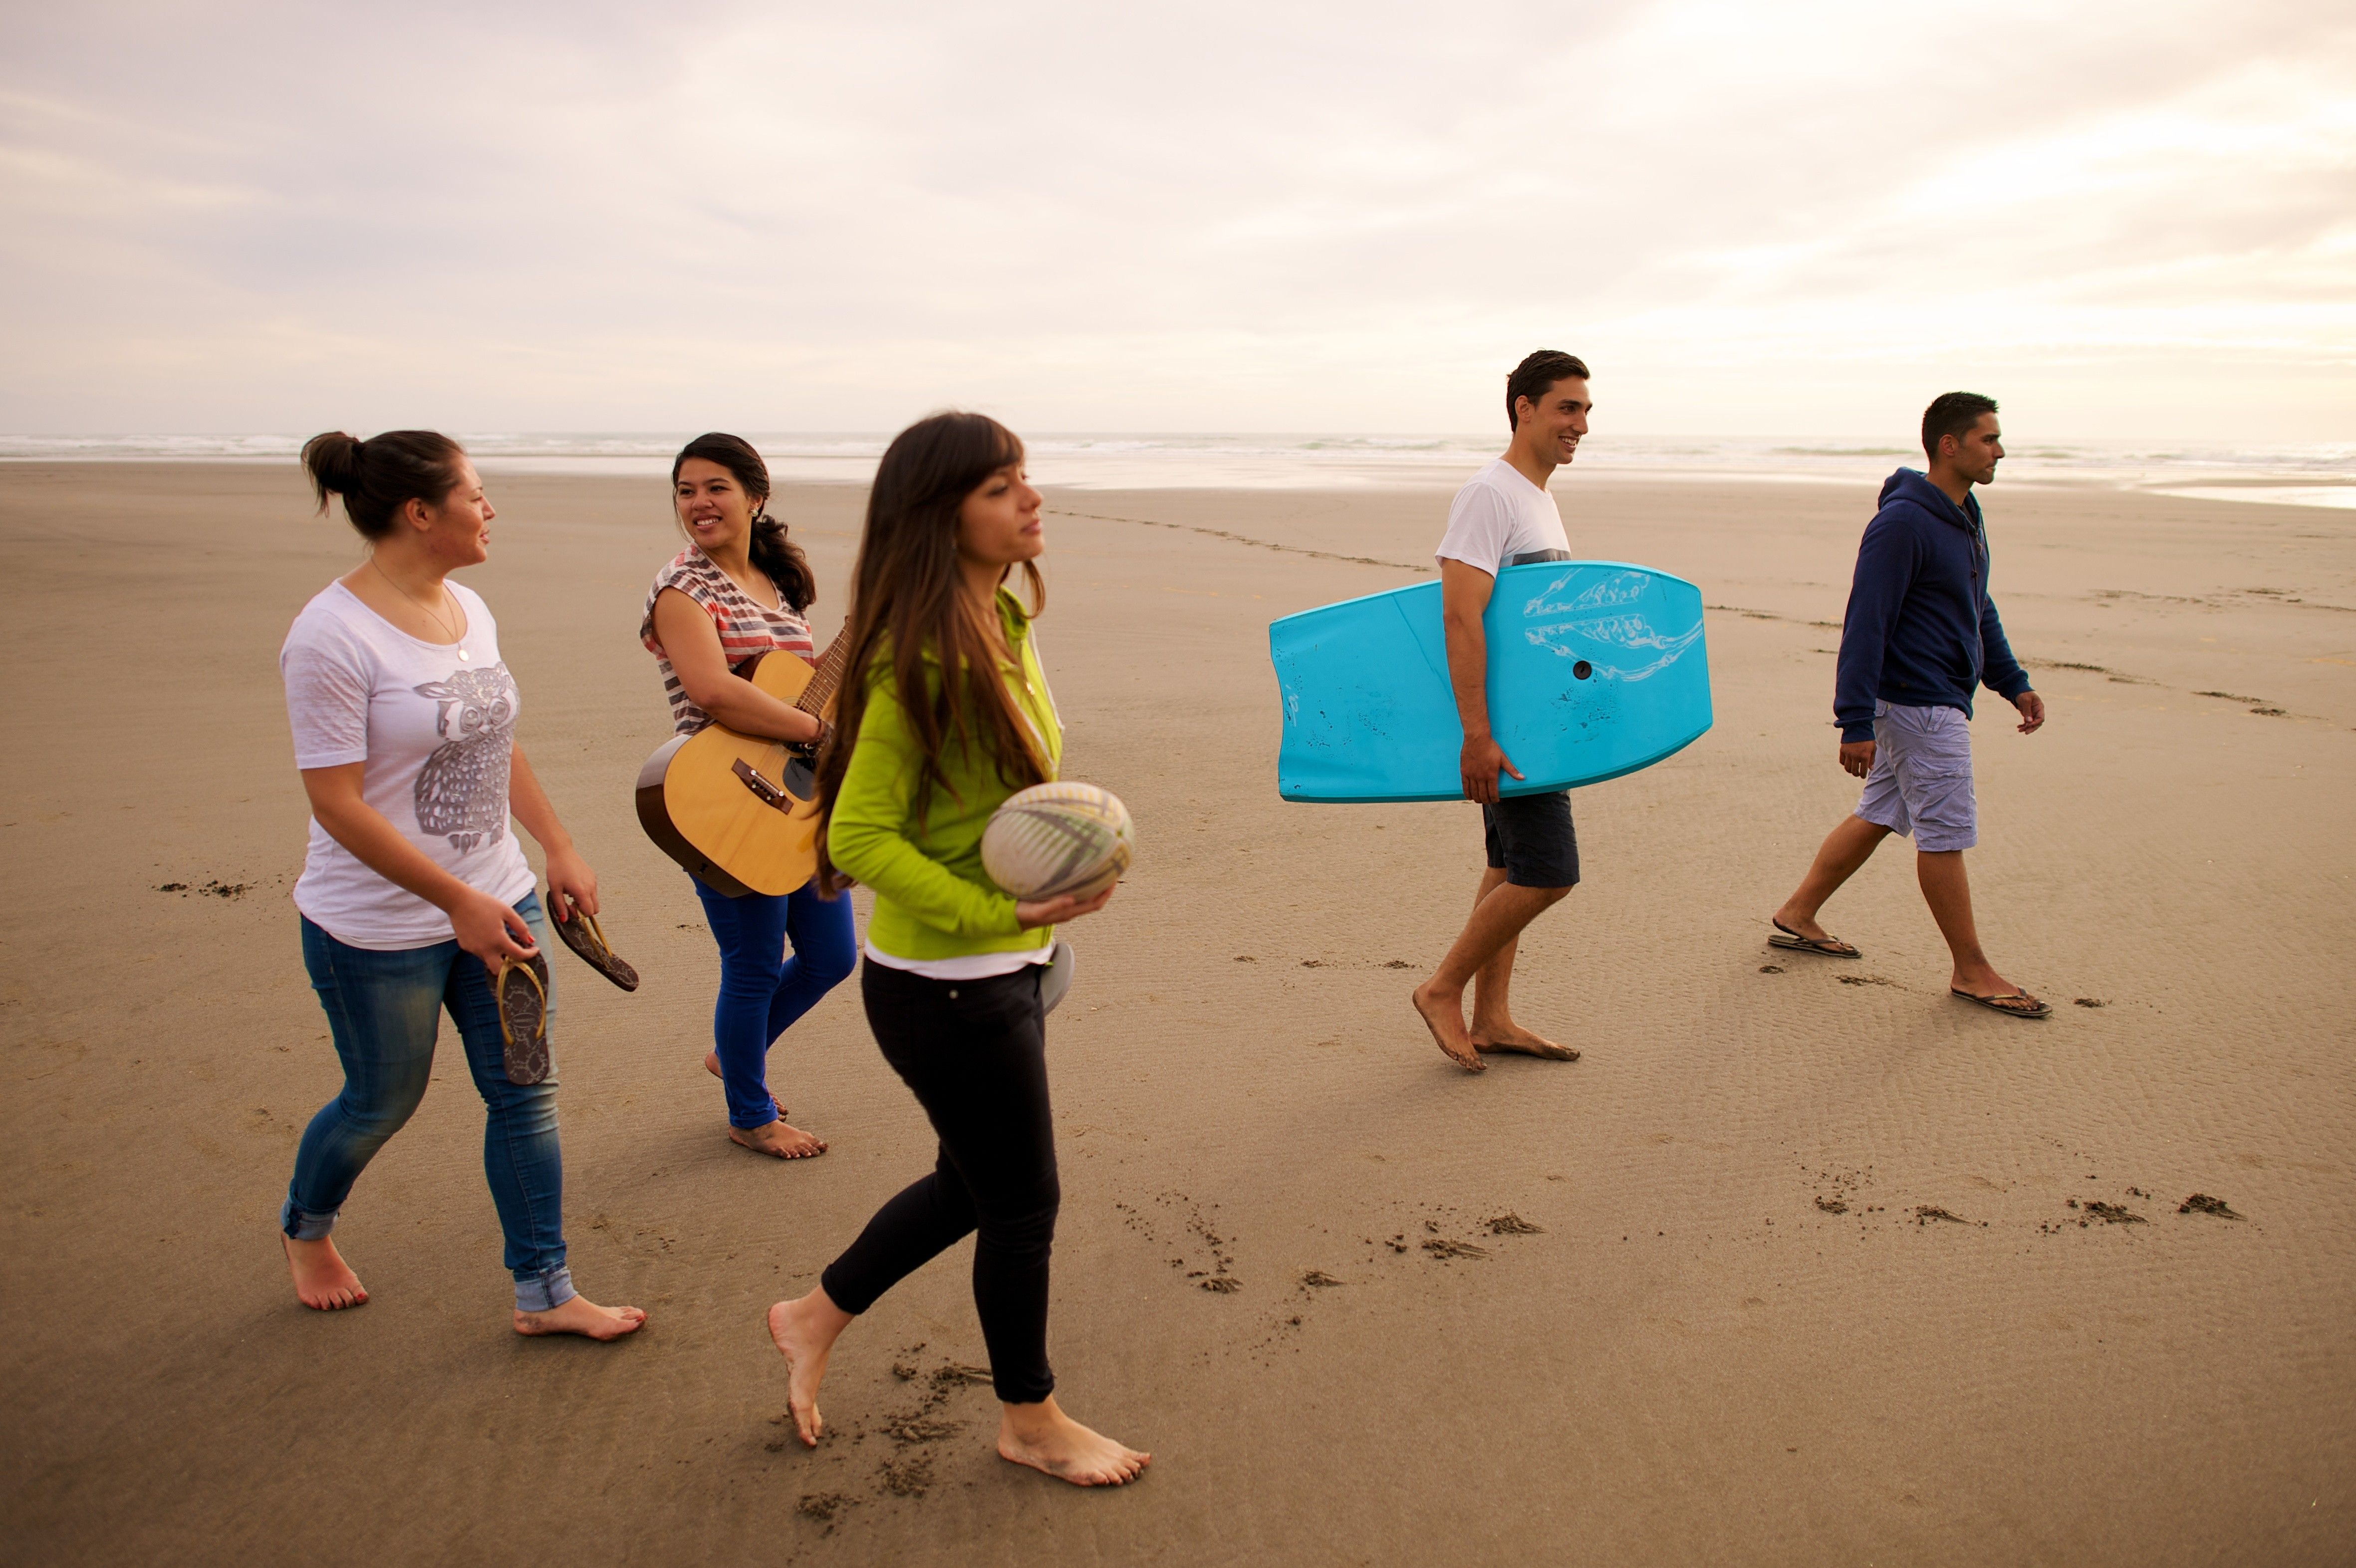 A group of youth go out on the beach together to bodyboard, play ball, and play guitar.